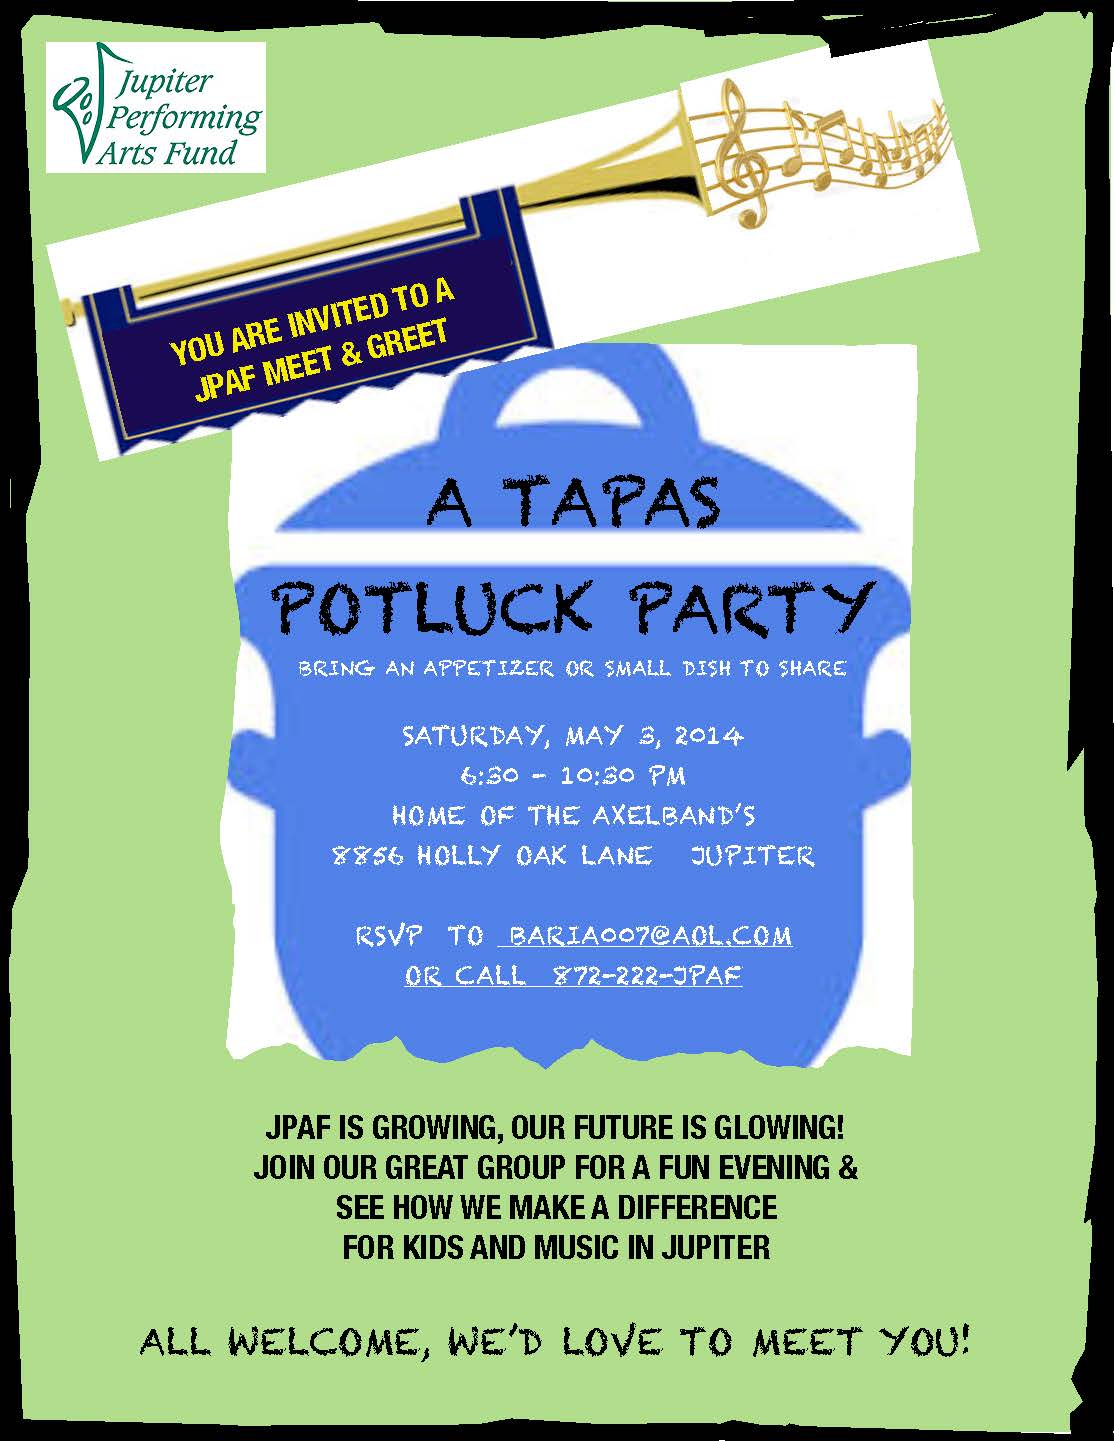 Jupiter Performing Arts Fund Tapas Potluck Party Saturday, May 3, 2014 6:30 – 10:30 PM